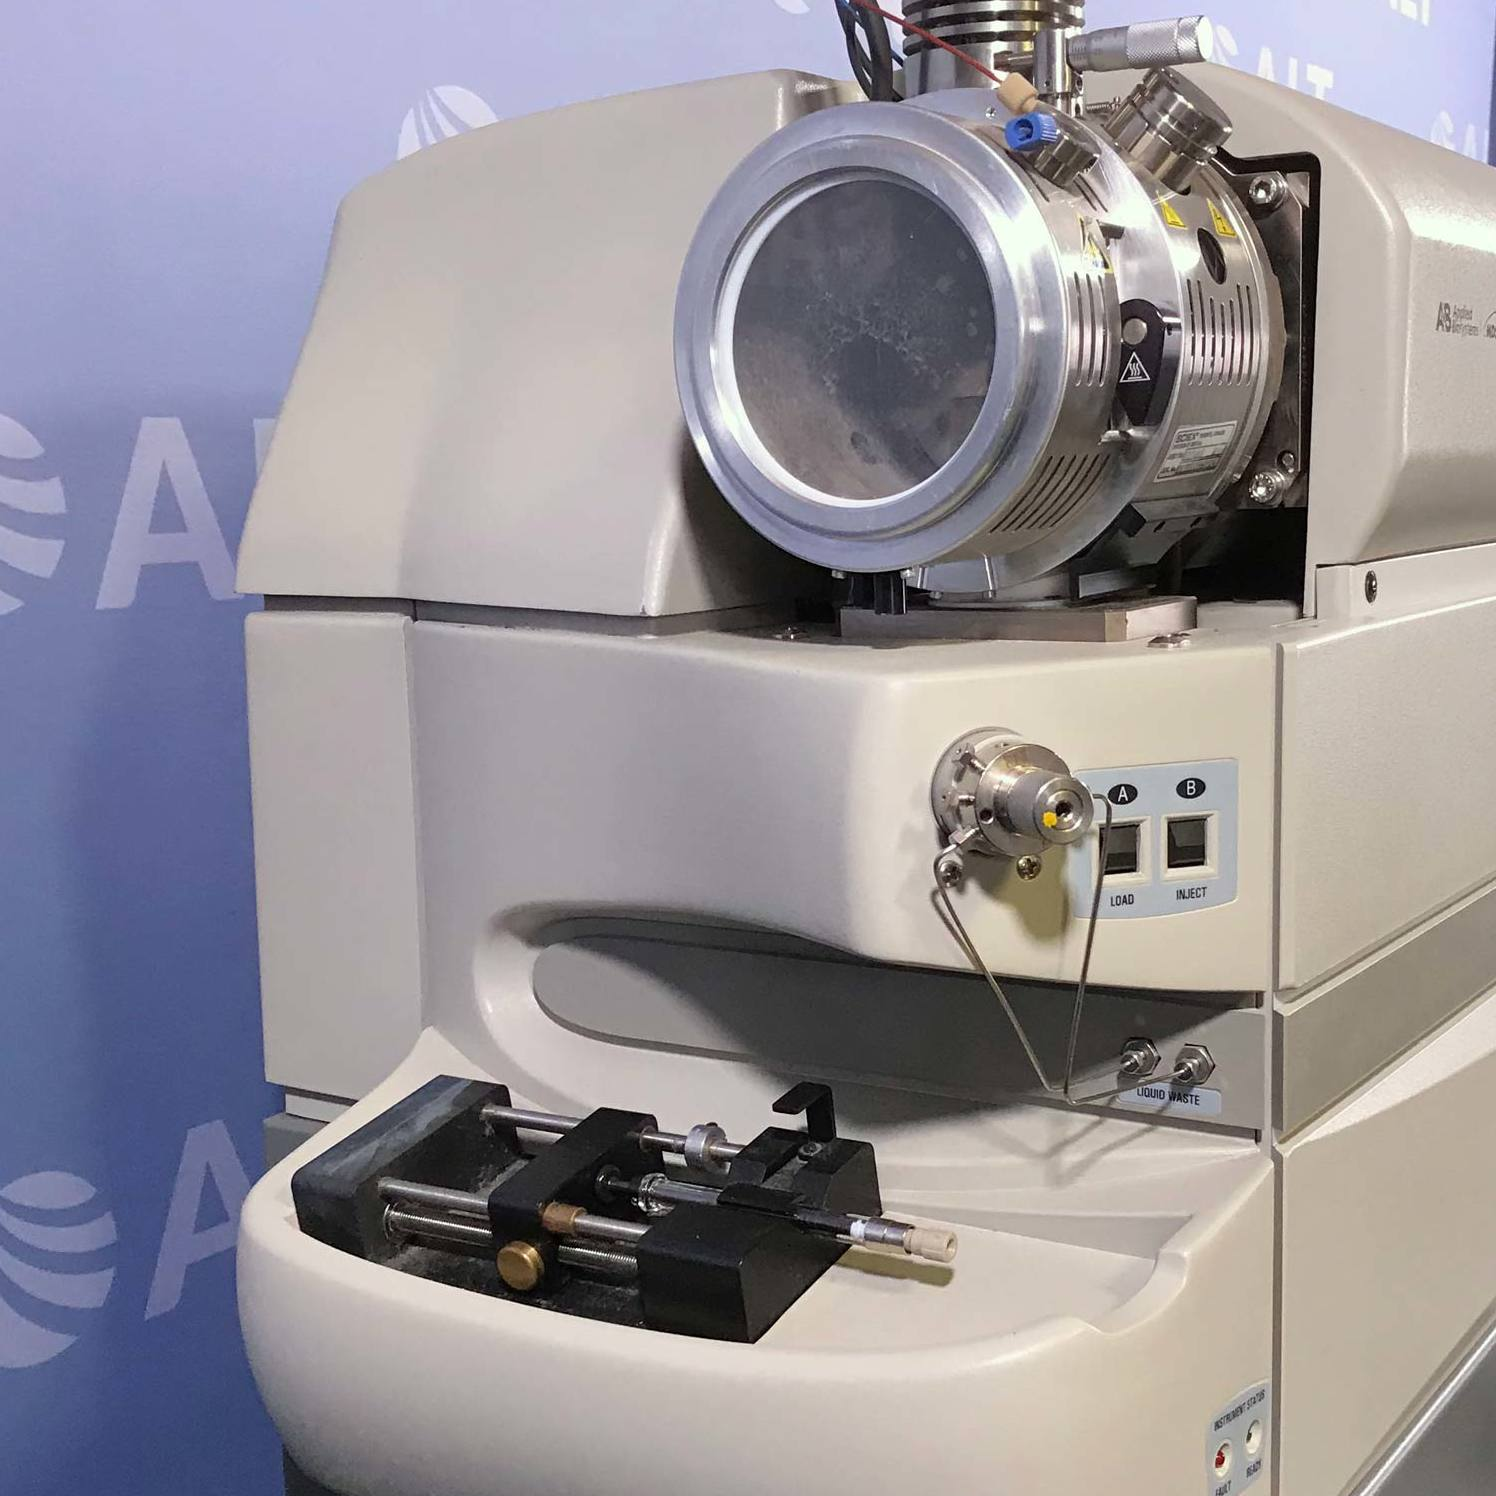 Applied Biosystems AB Sciex 3200 QTRAP LC-MS/MS System with Agilent 1290 Infinity System Image